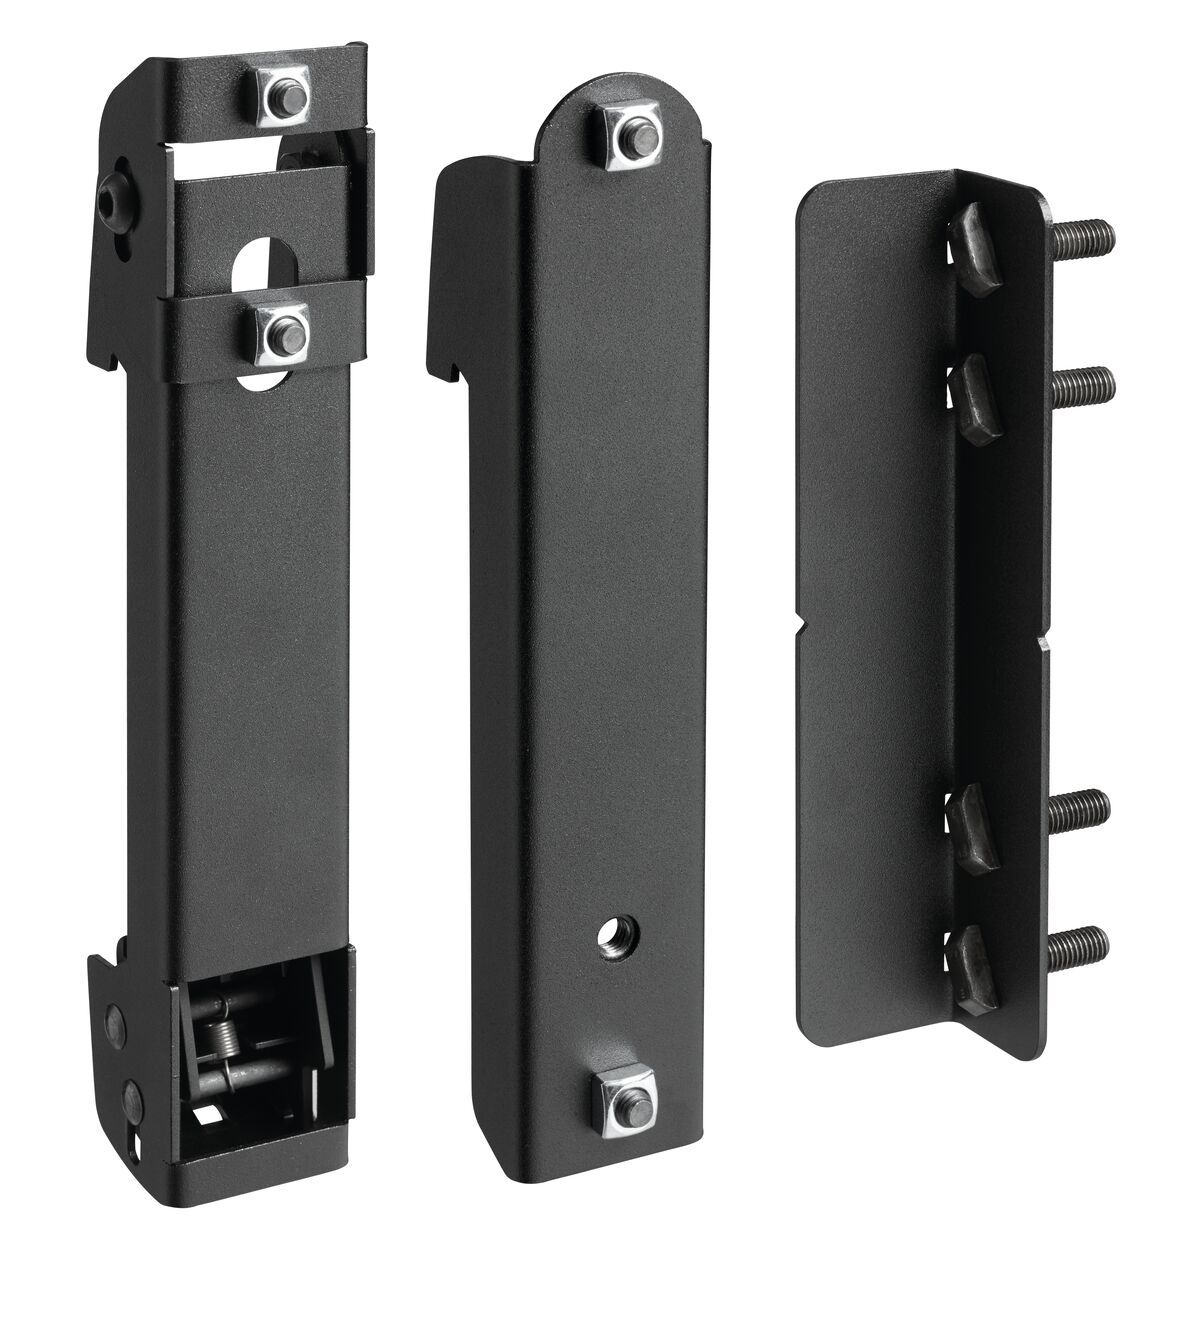 Vogel's PLS 8001 Vertical profile mounting strips - Product